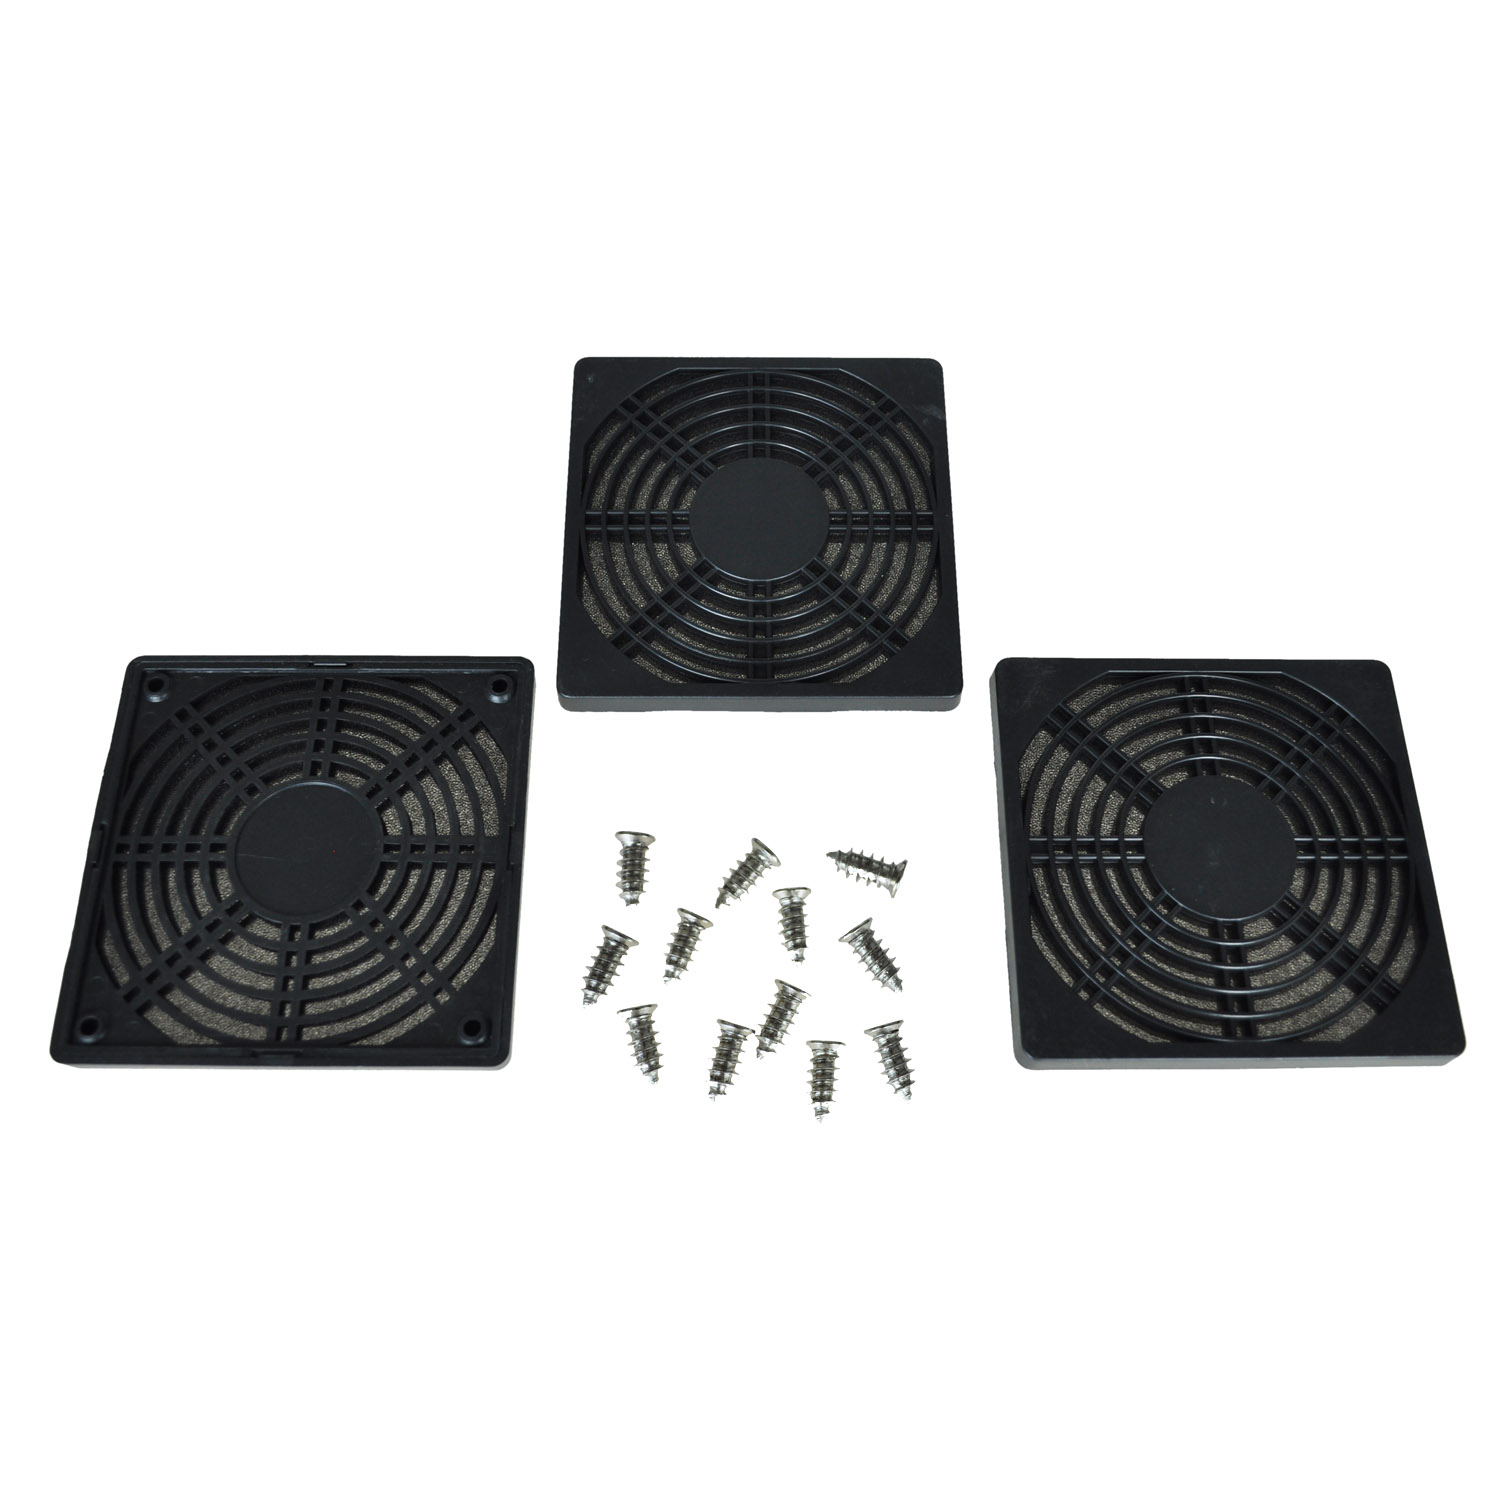 12 pcs Screws <font><b>120</b></font> <font><b>mm</b></font> <font><b>Fan</b></font> Dust Filter Dustproof Screen <font><b>PC</b></font> Computer Case Mesh <font><b>PC</b></font> Case <font><b>Fan</b></font> Dust Sponge Filter Black image